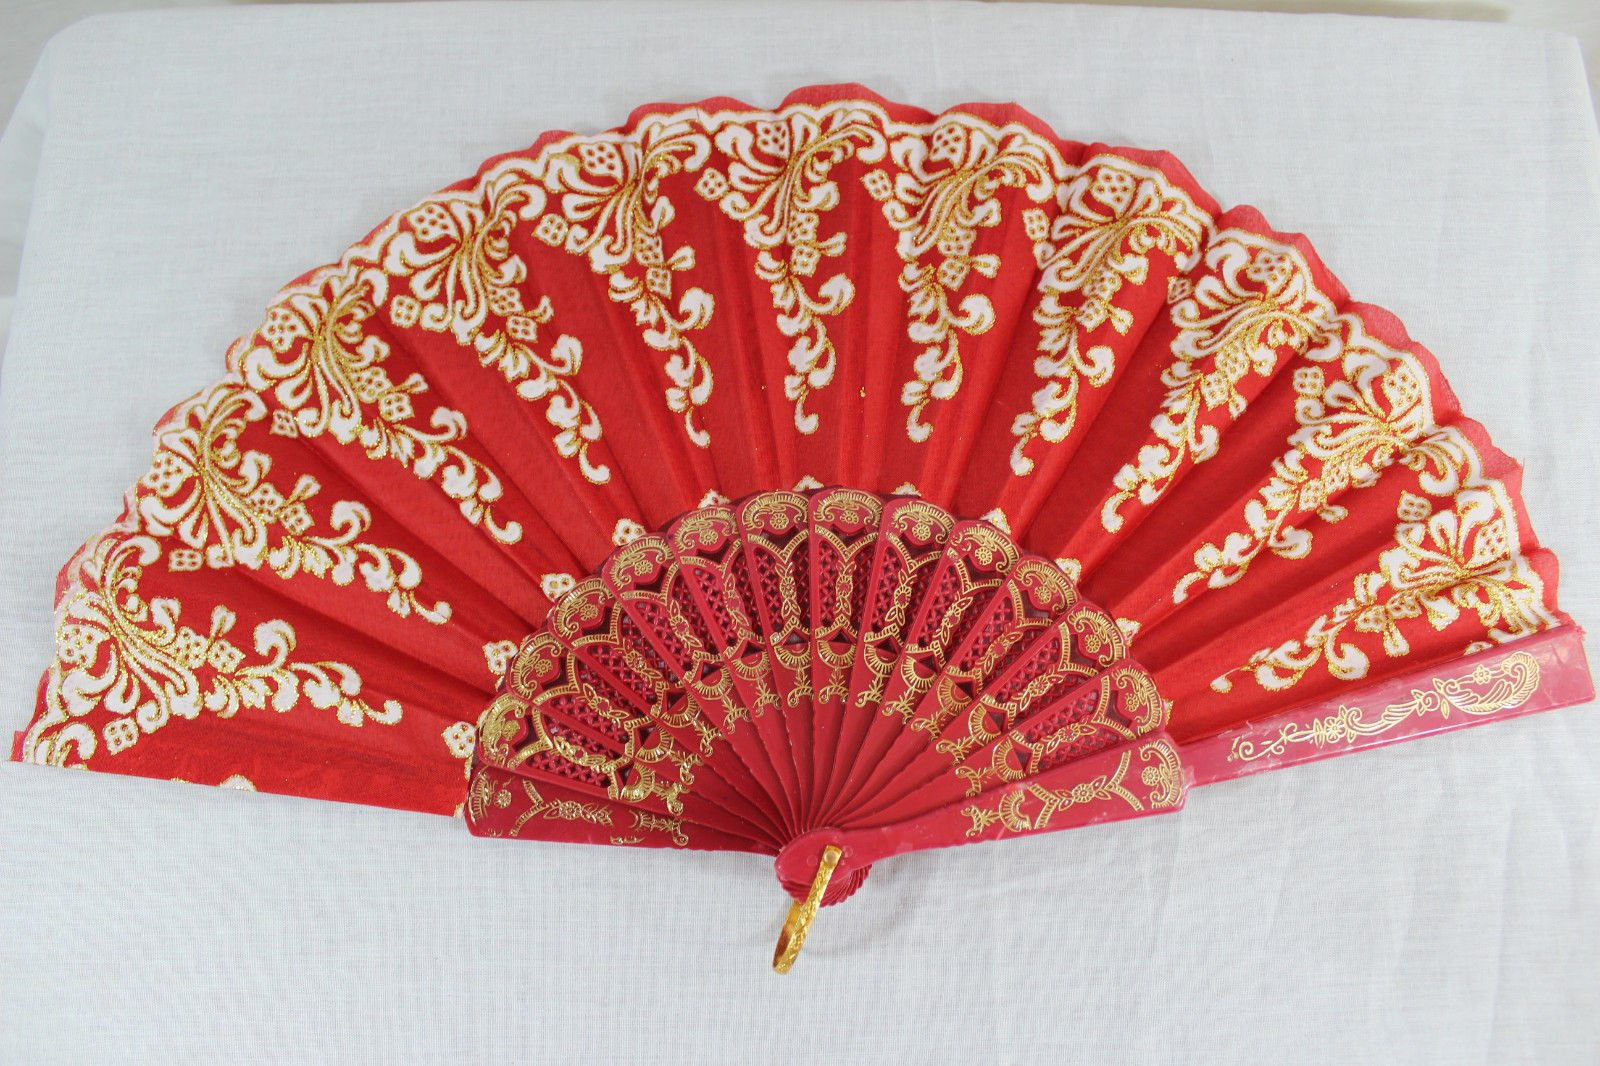 Red Vintage Spanish Style Dance Party Wedding Lace Folding Hand Held Flower Fan